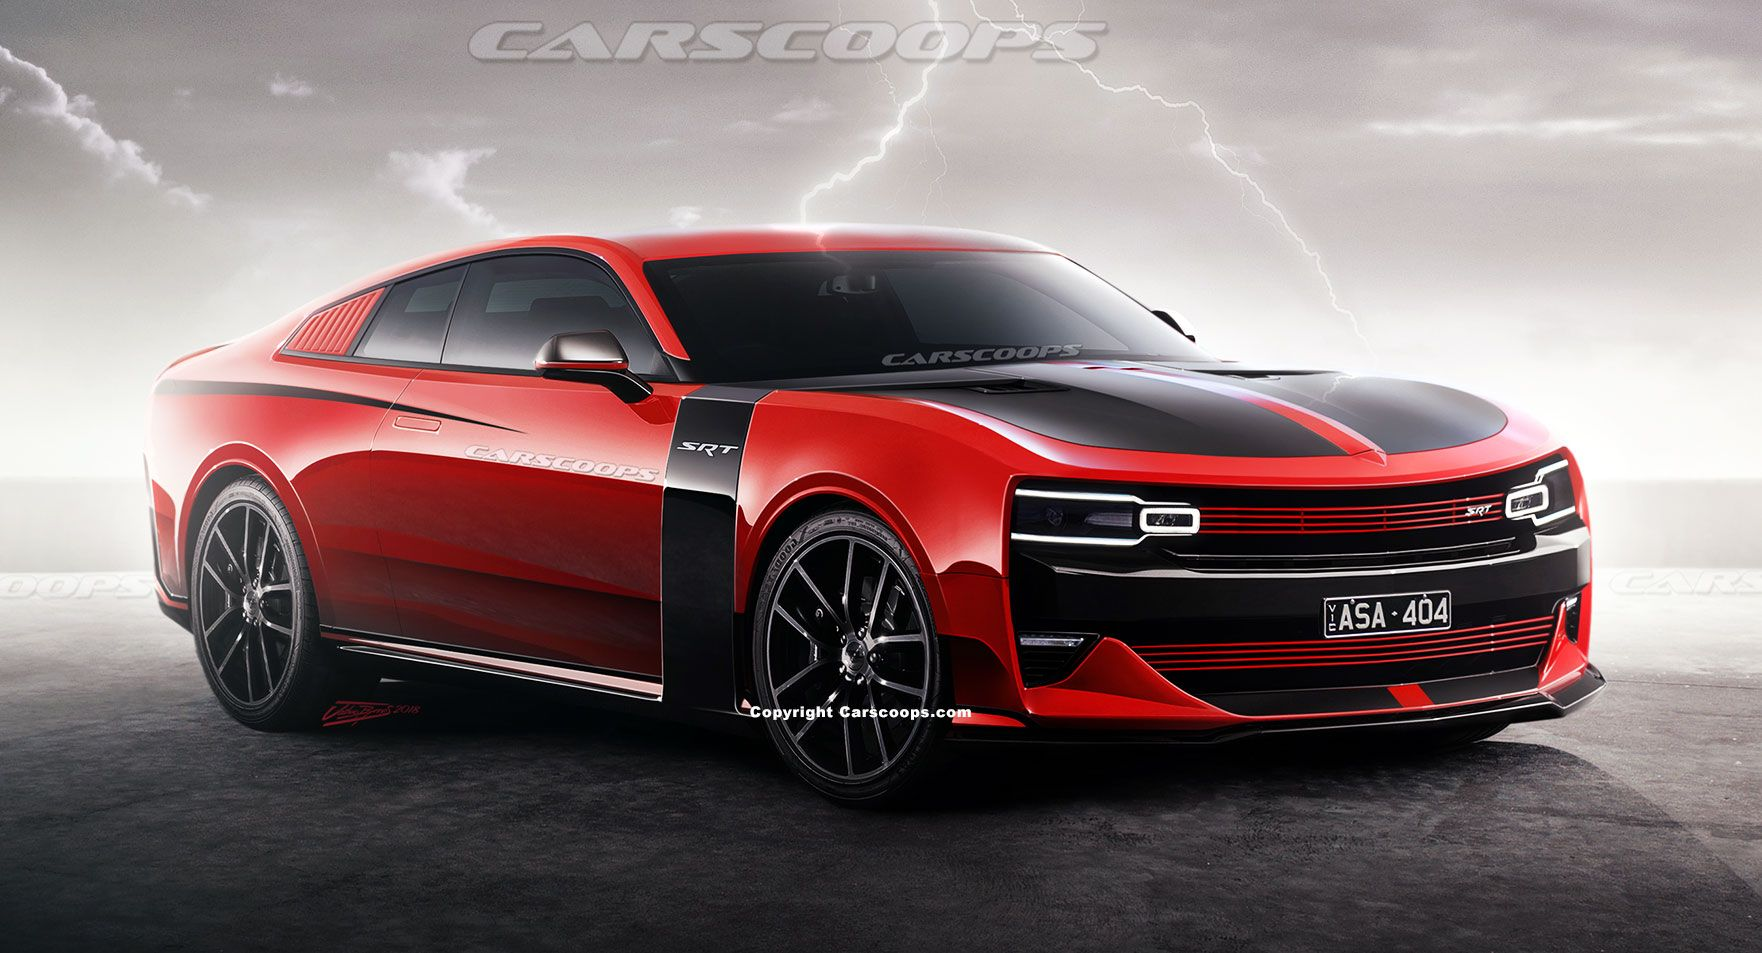 2020 Chrysler Valiant Charger Reimagining An Aussie Icon With